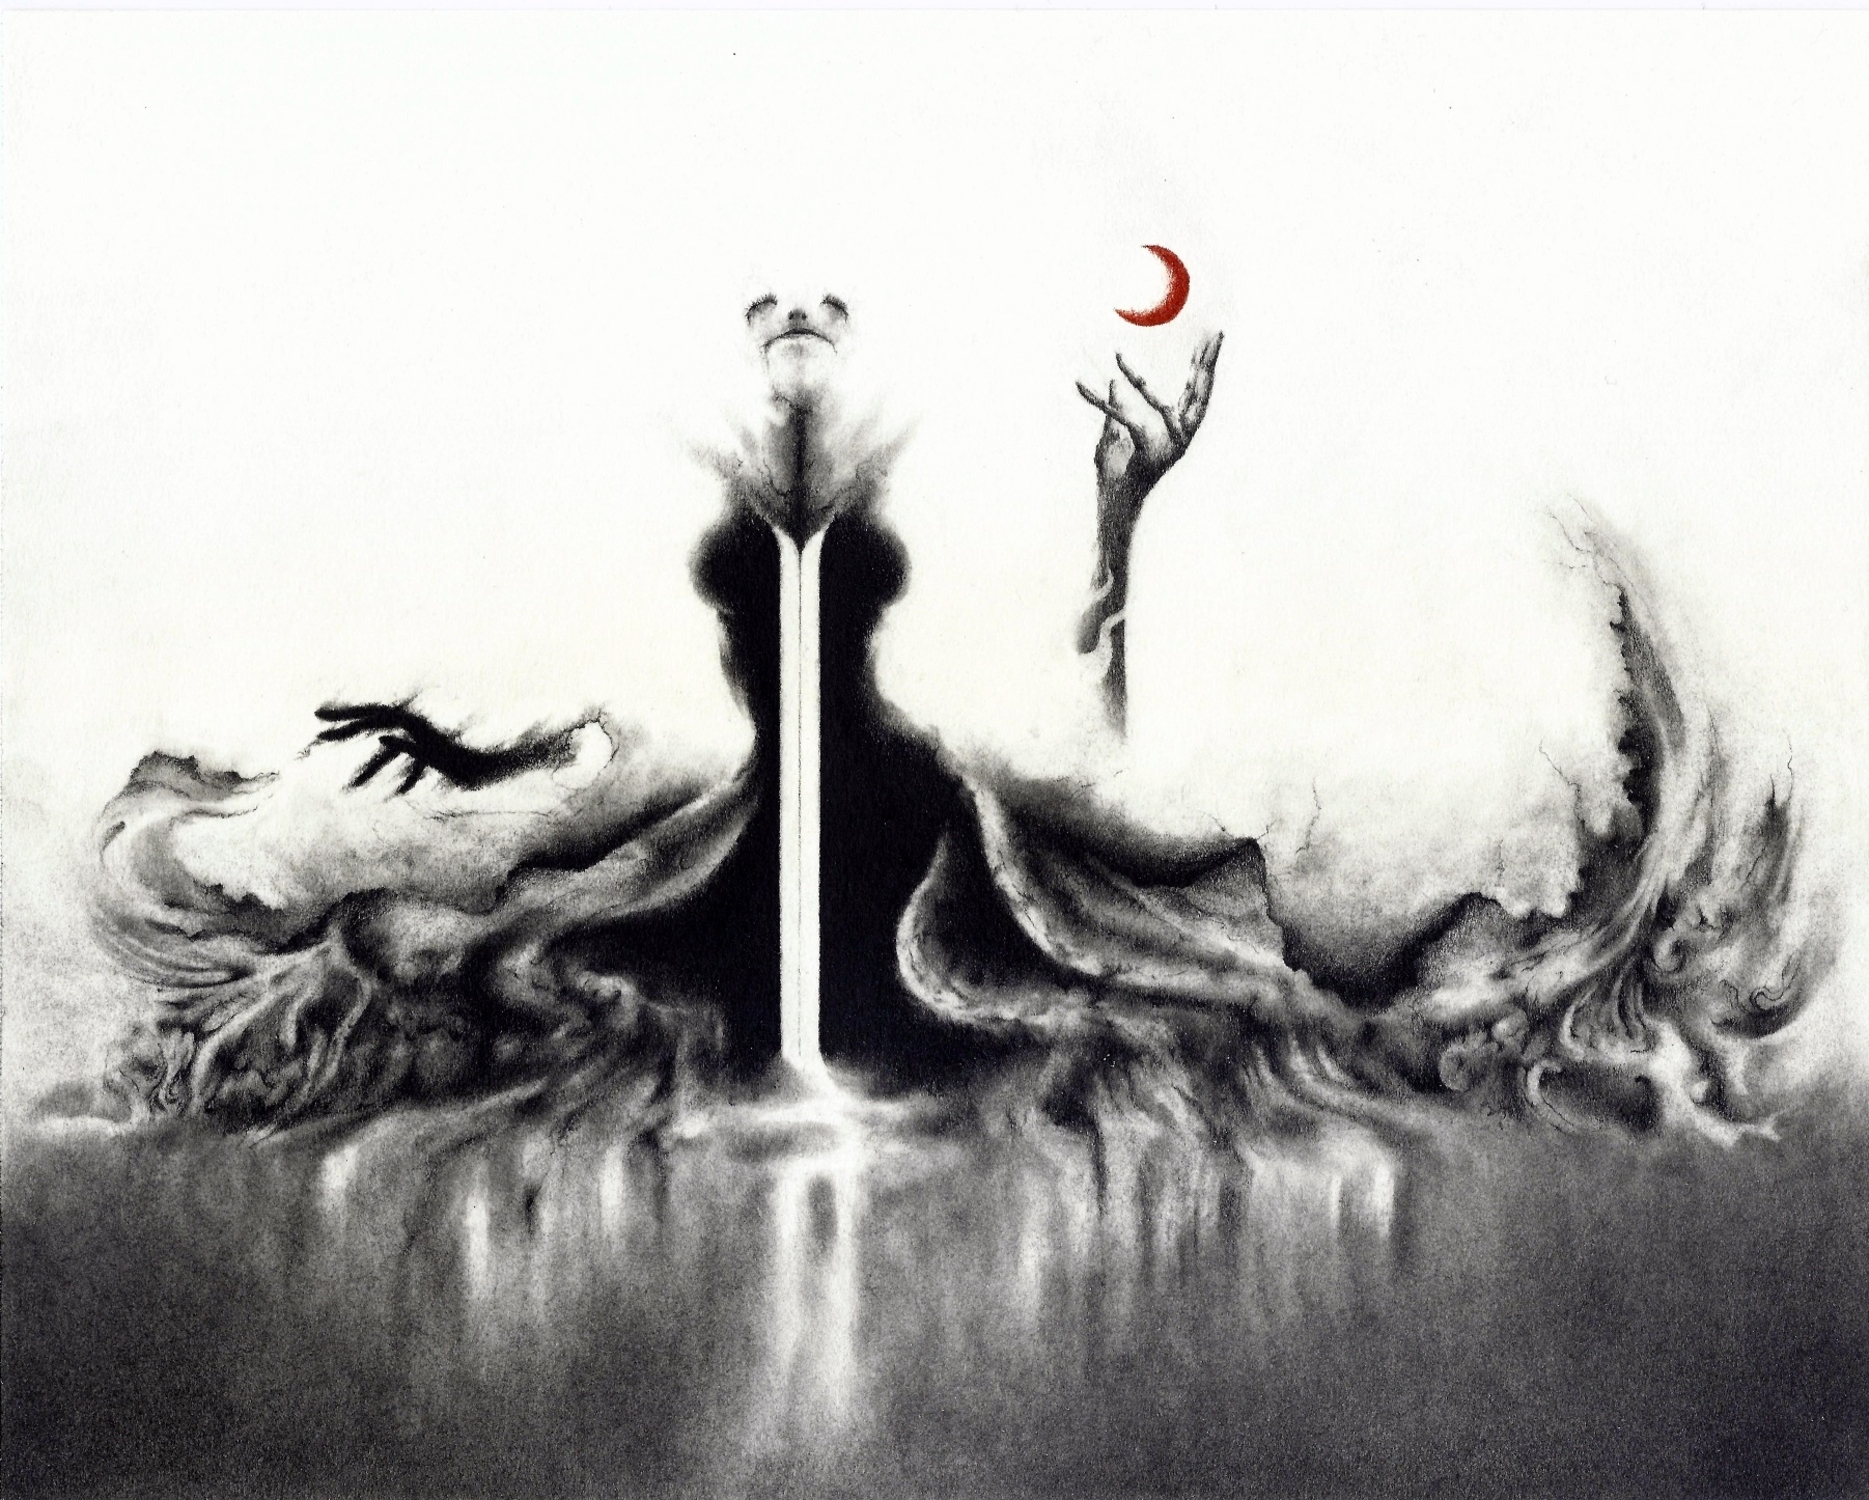 The Dreamless Artwork by Misael Urquico